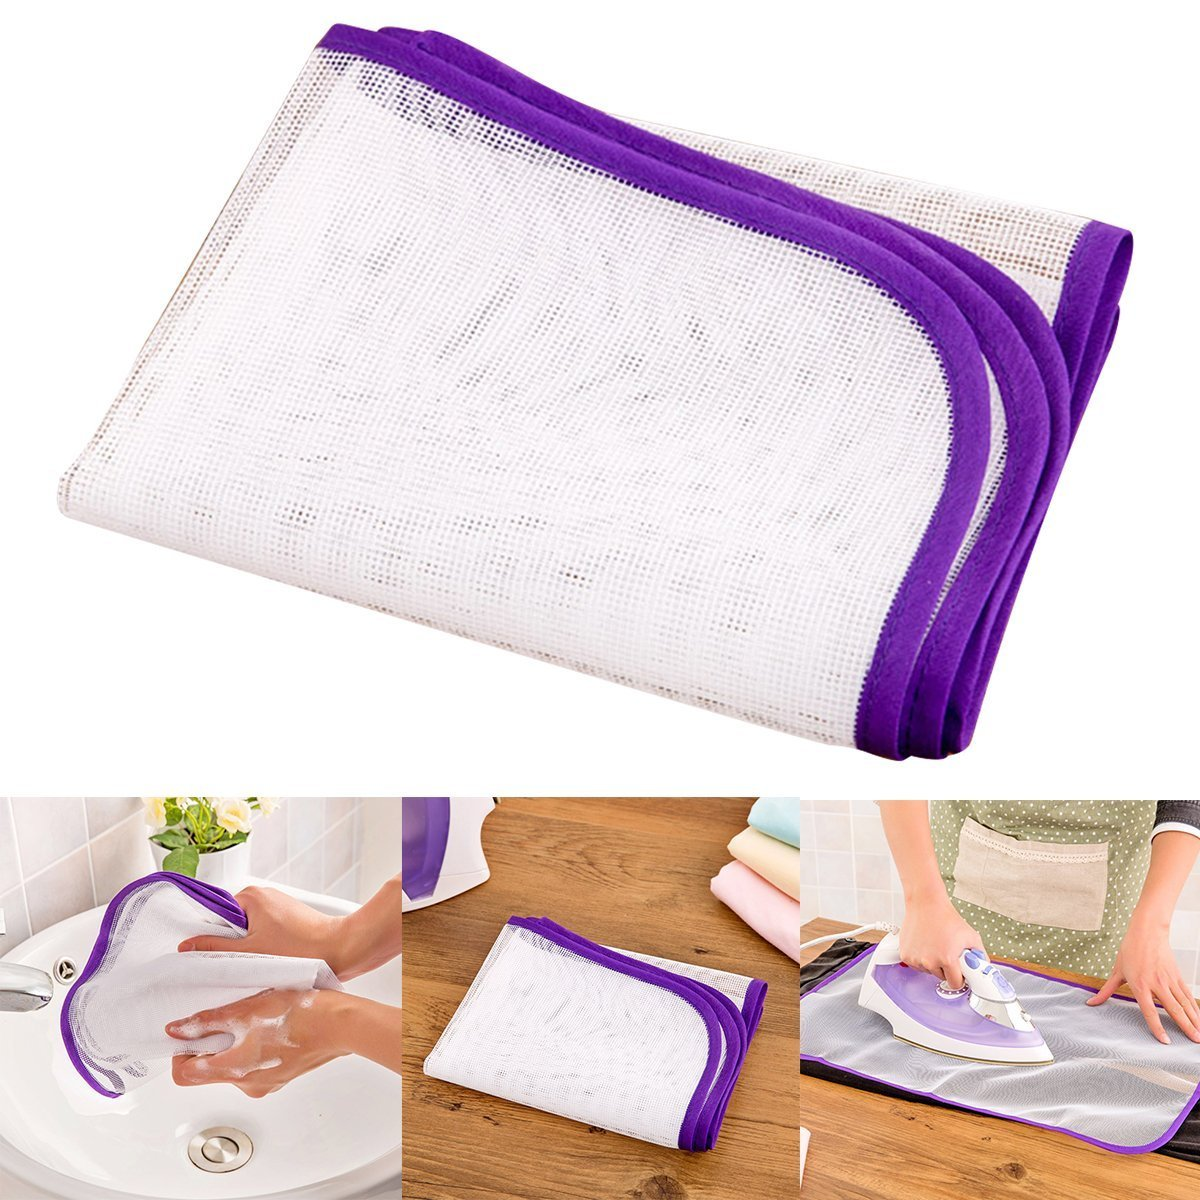 6 PCS 3 Pink and 3 Purple Saving Mesh Pressing Pad Cloth - Protective Ironing Scorch Mesh Cloth Anyumocz